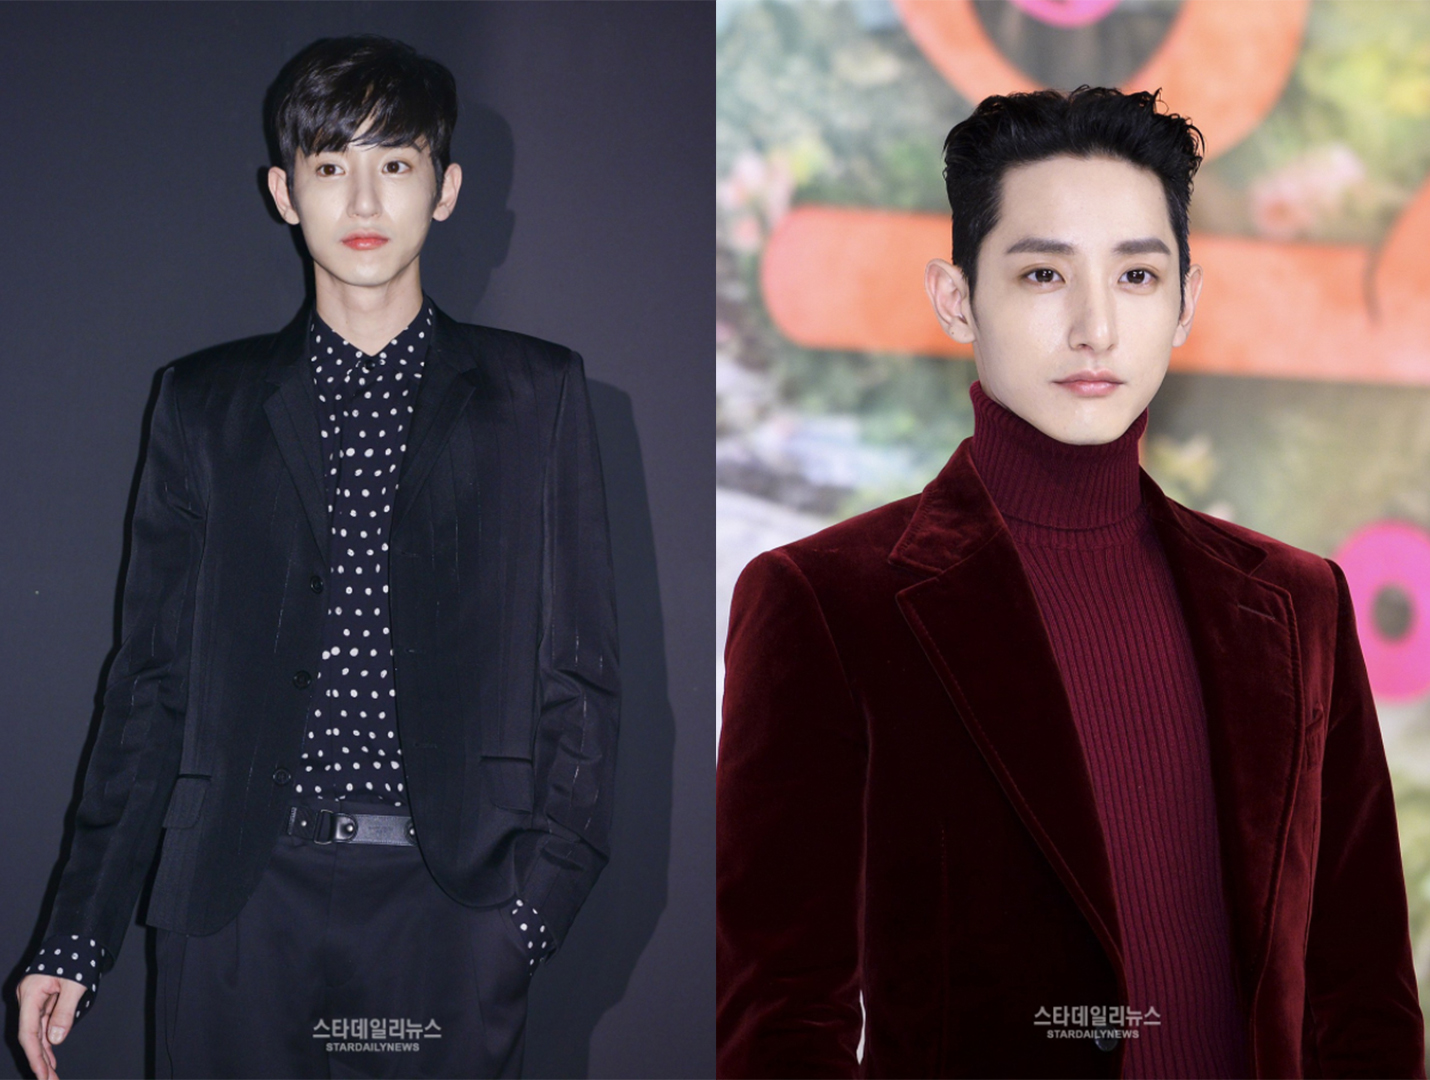 lee soo hyuk makes fans do a double take with surprising new look